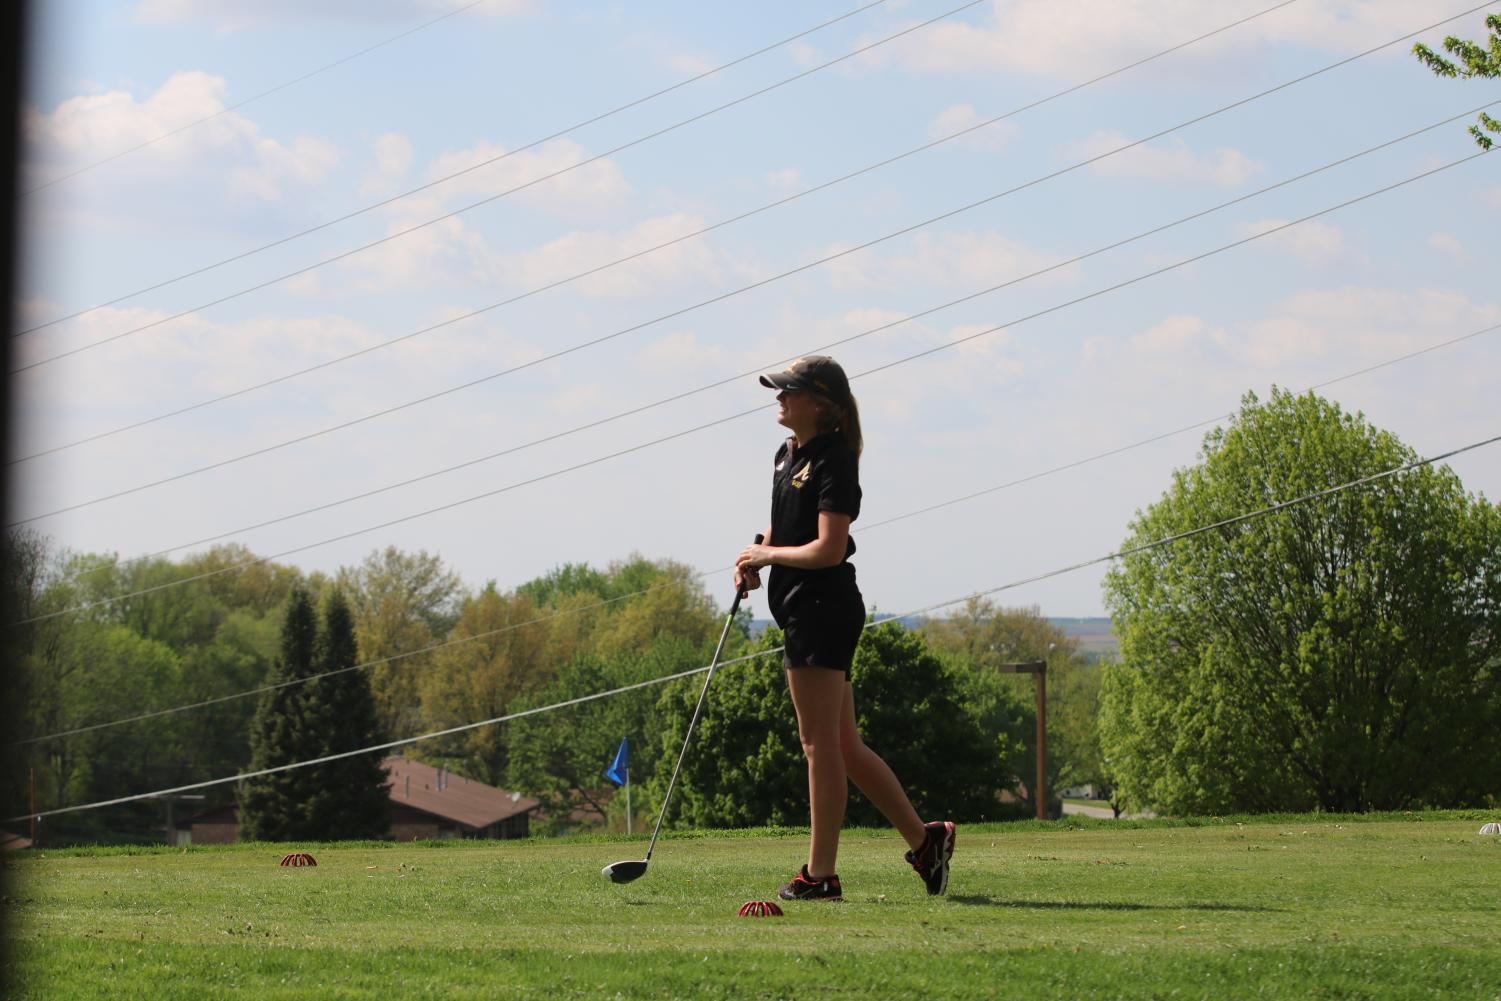 Senior Baylee Newell watches her drive from the tee off spot. Newell was a medalist at Denison-Schleswig with a score of 43.